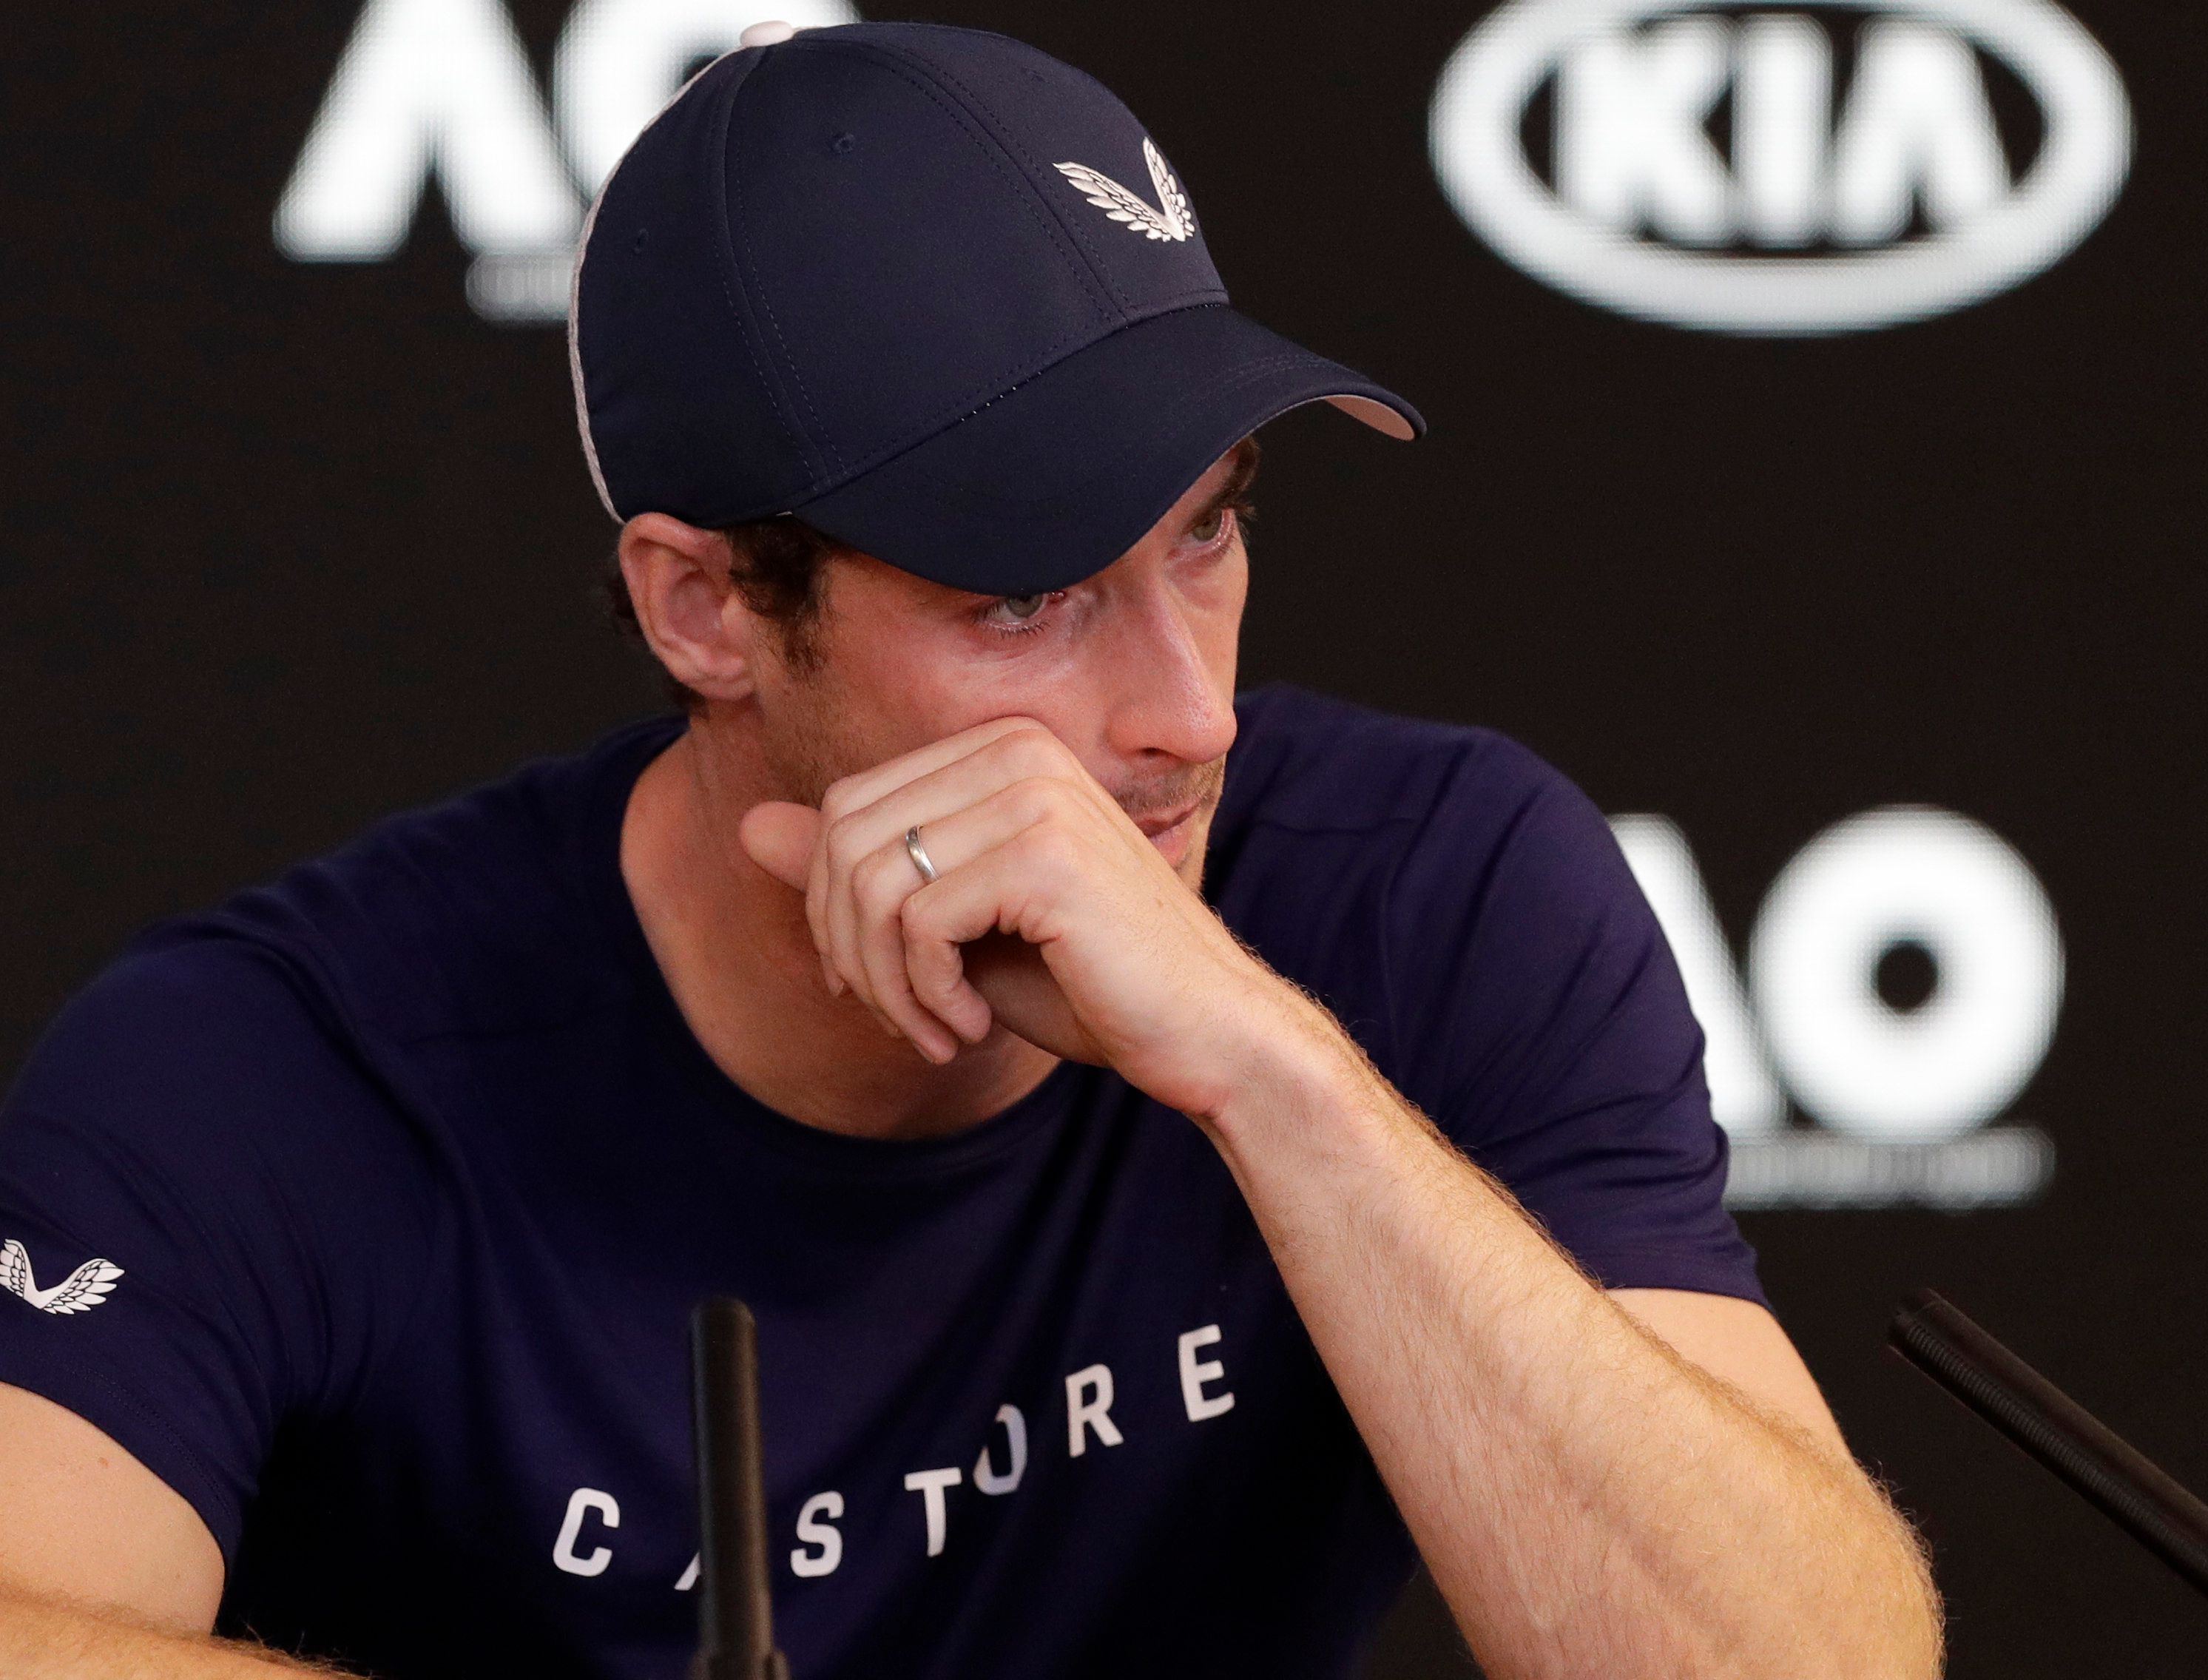 Andy Murray's agony: 'It's so sore I even hate walking the dogs'